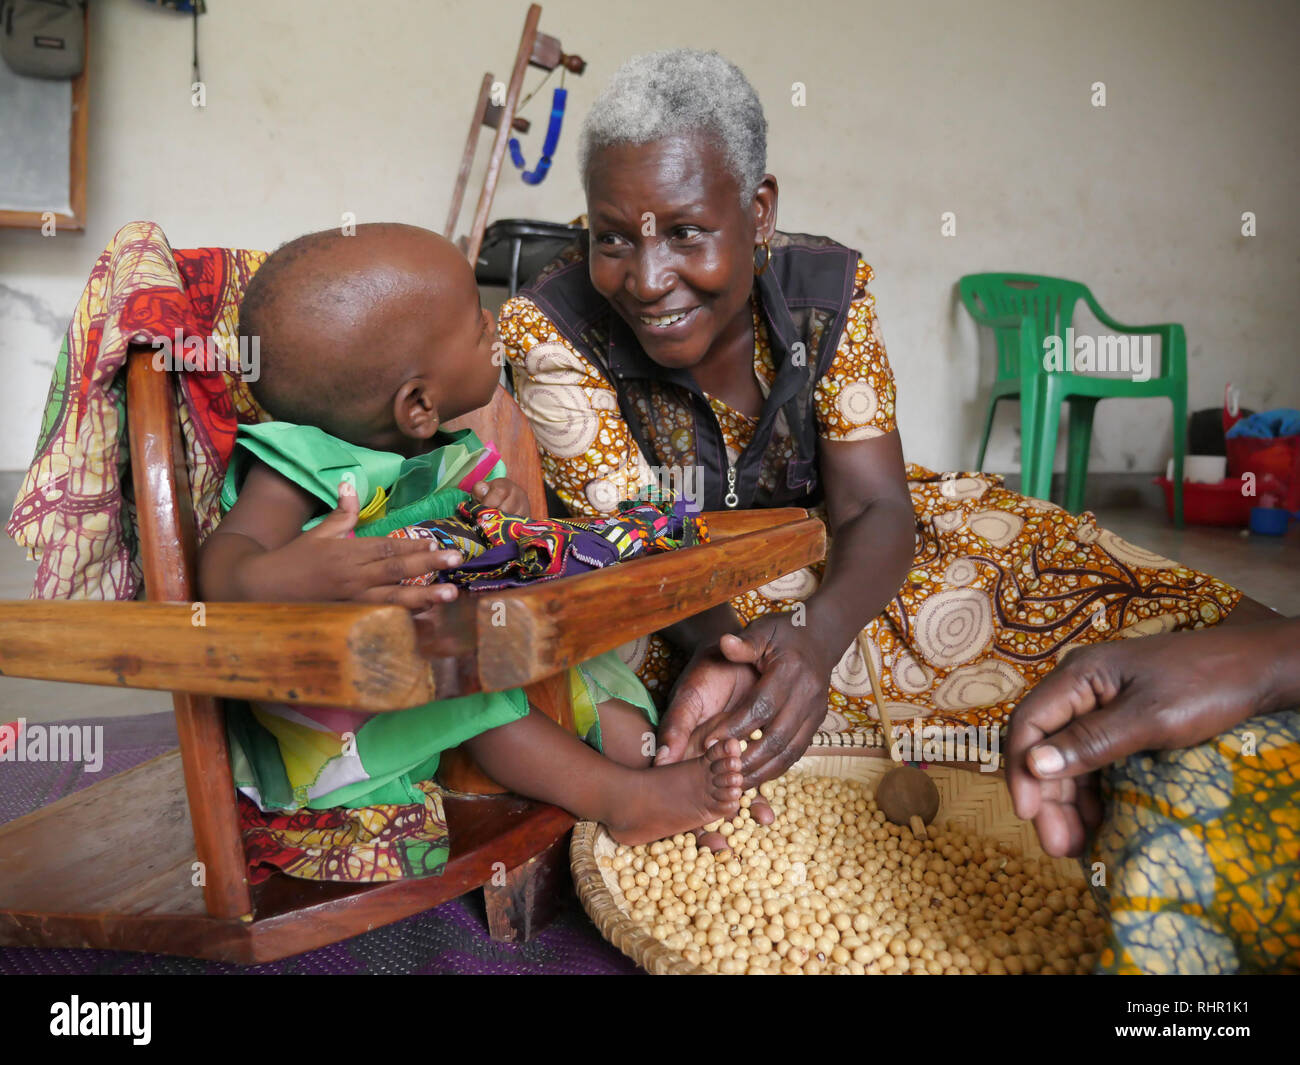 TANZANIA  -  Sean Sprague photo 2018  Physio-therapy workshop for children with special needs, Mabatini, Mwanza. 1-year-old baby girl suffers from cerebral palsy here assisted by Natalia Kadio, project coordinator. Stock Photo